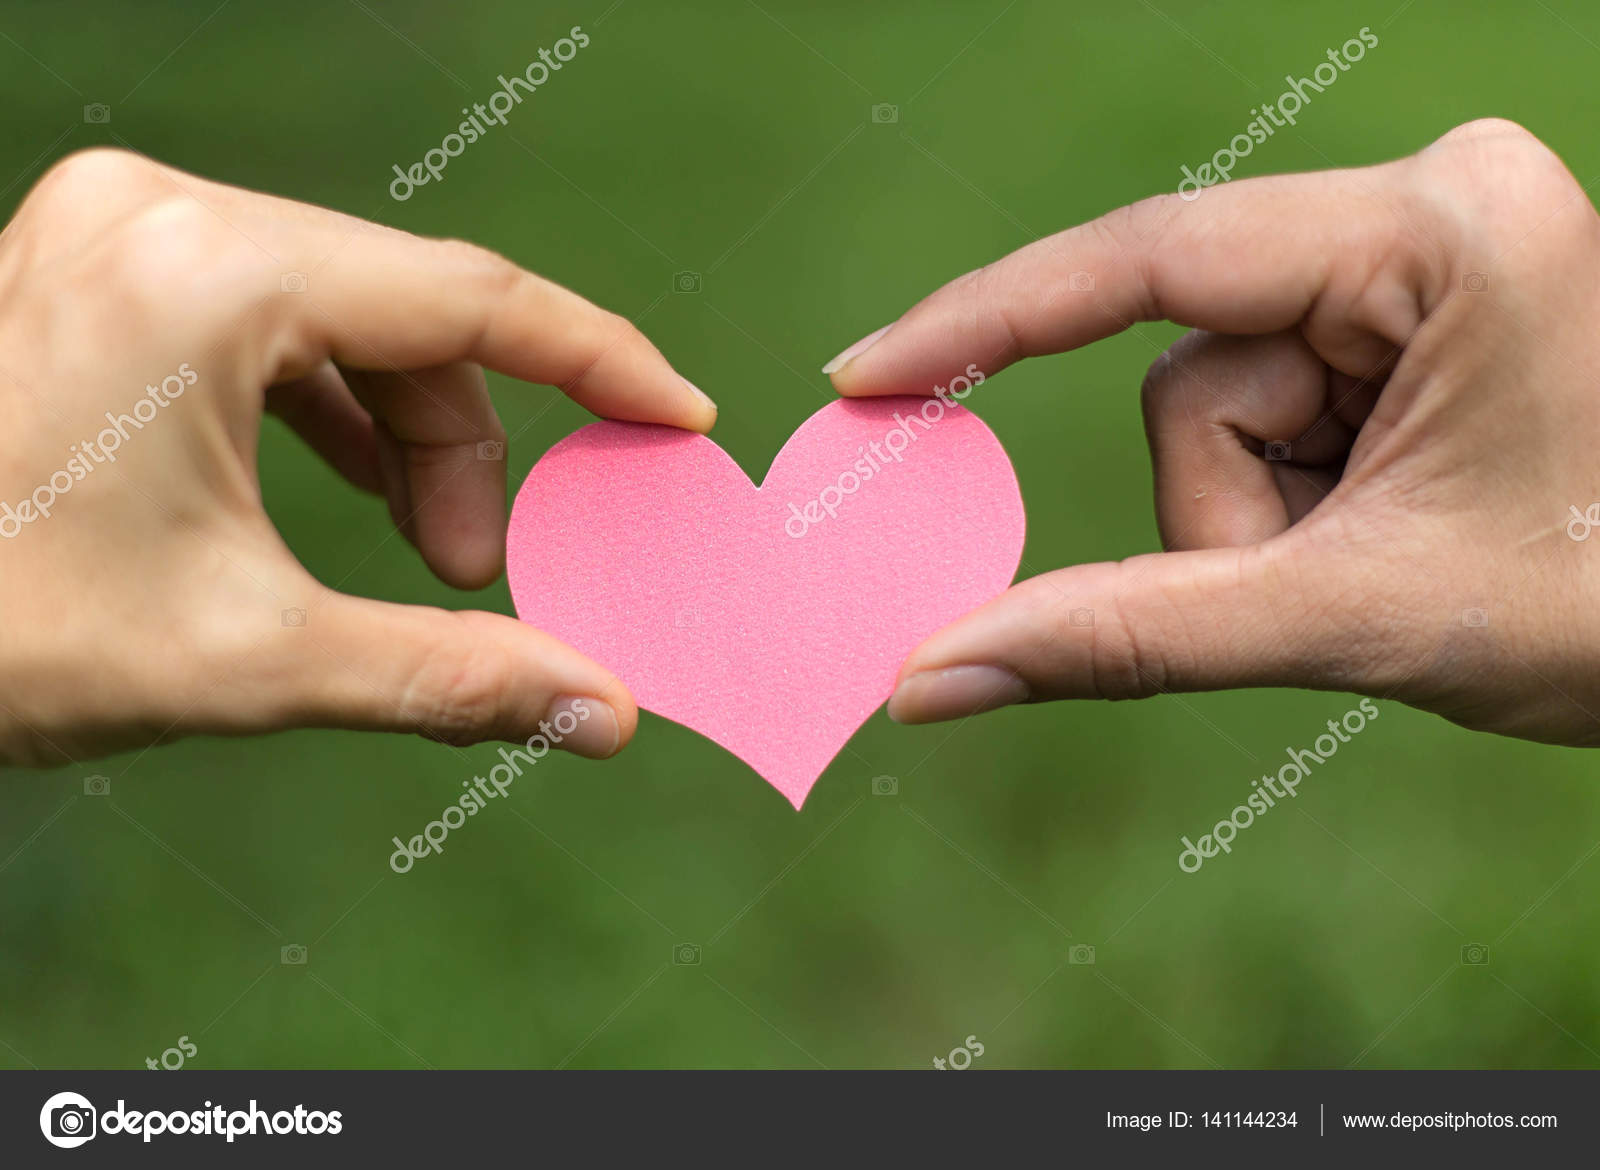 two hands holding a heart